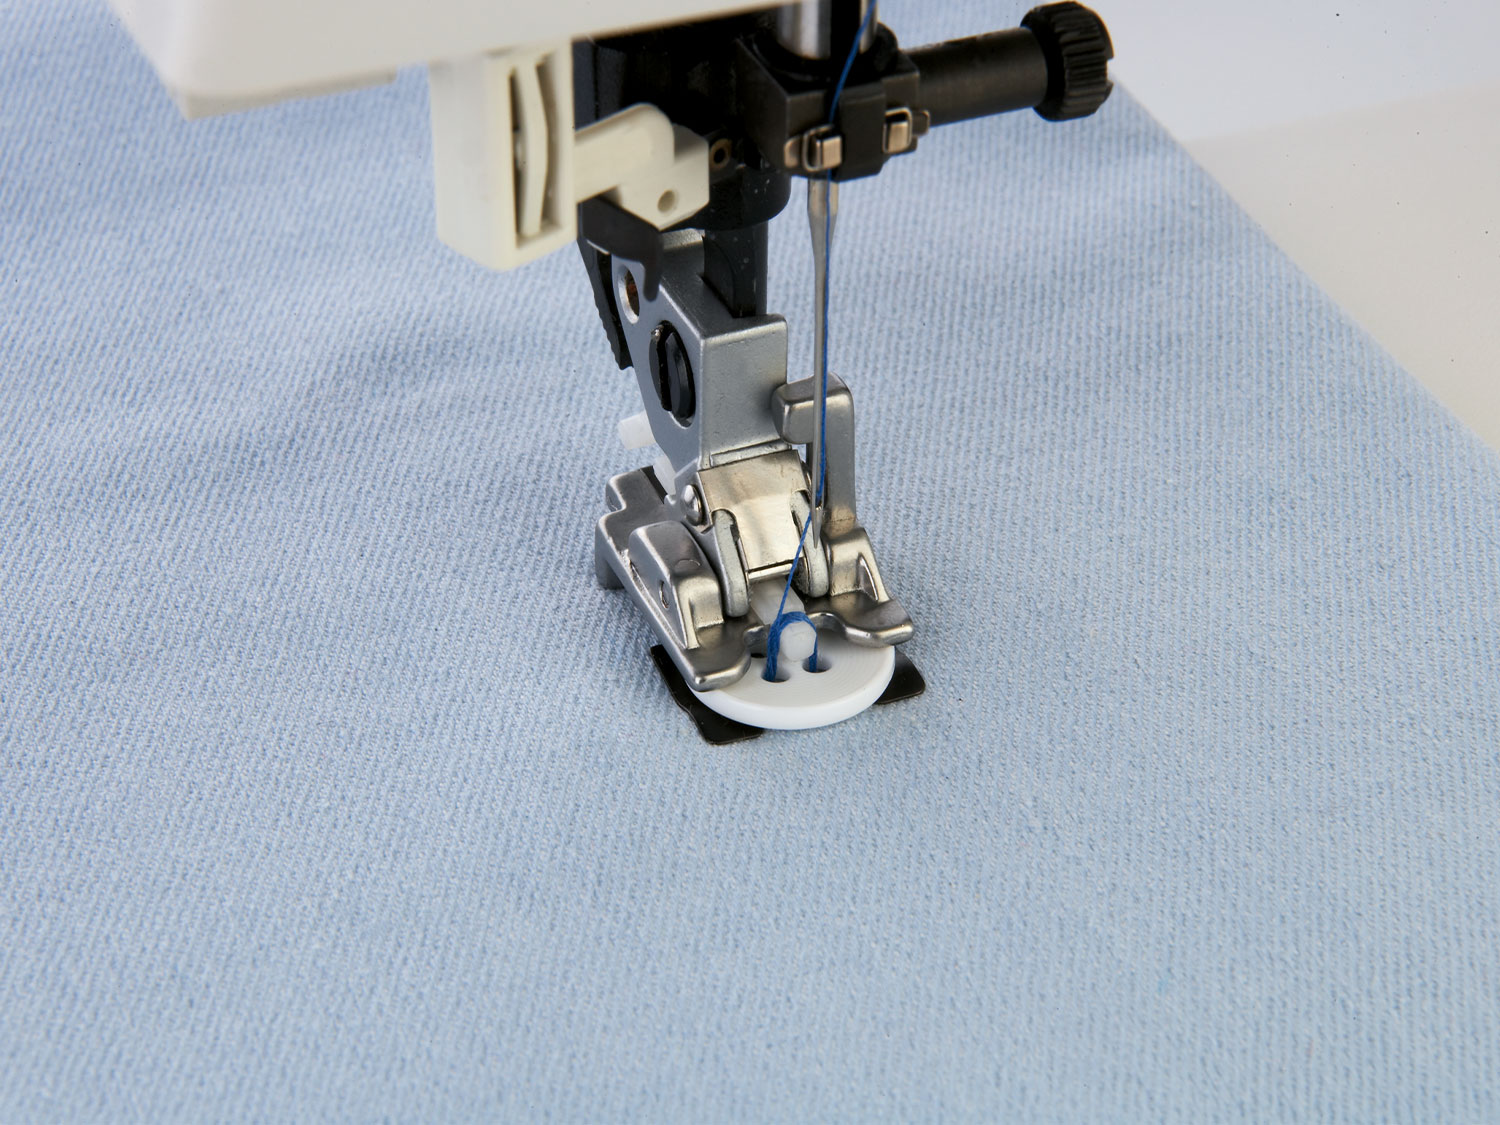 sew on button foot